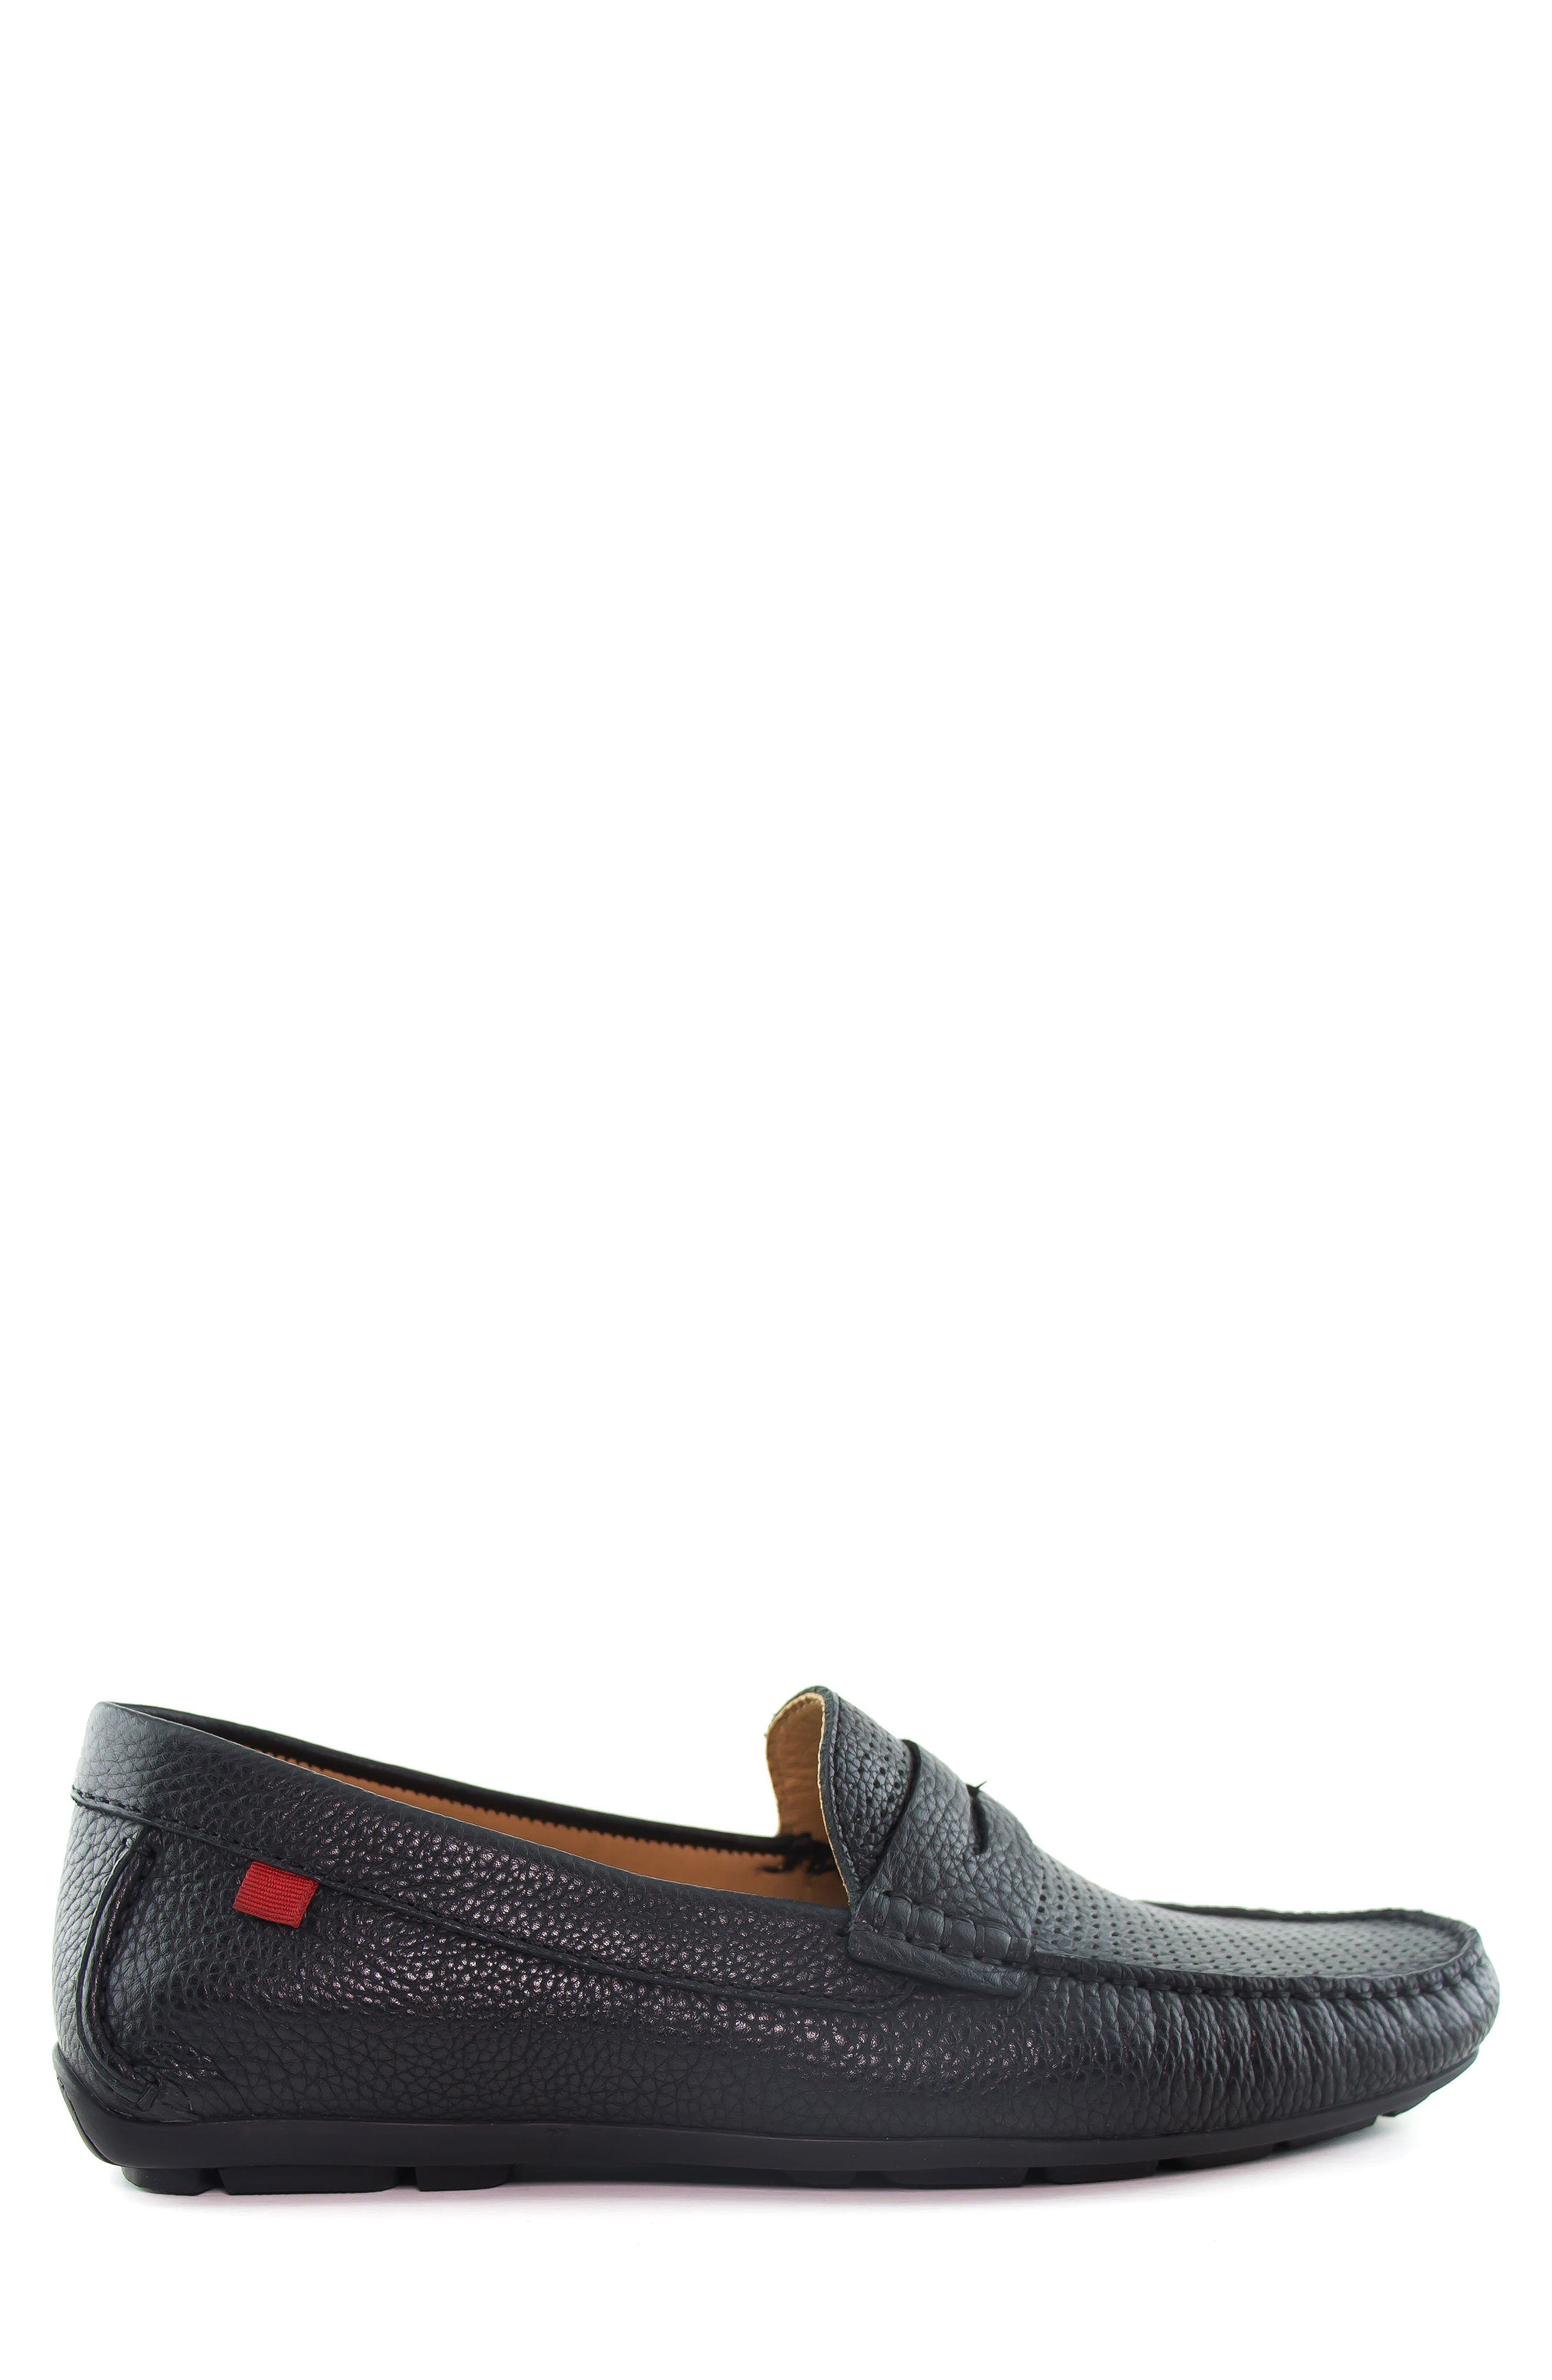 MARC JOSEPH NEW YORK, Union Street Driving Shoe, Alternate thumbnail 3, color, BLACK